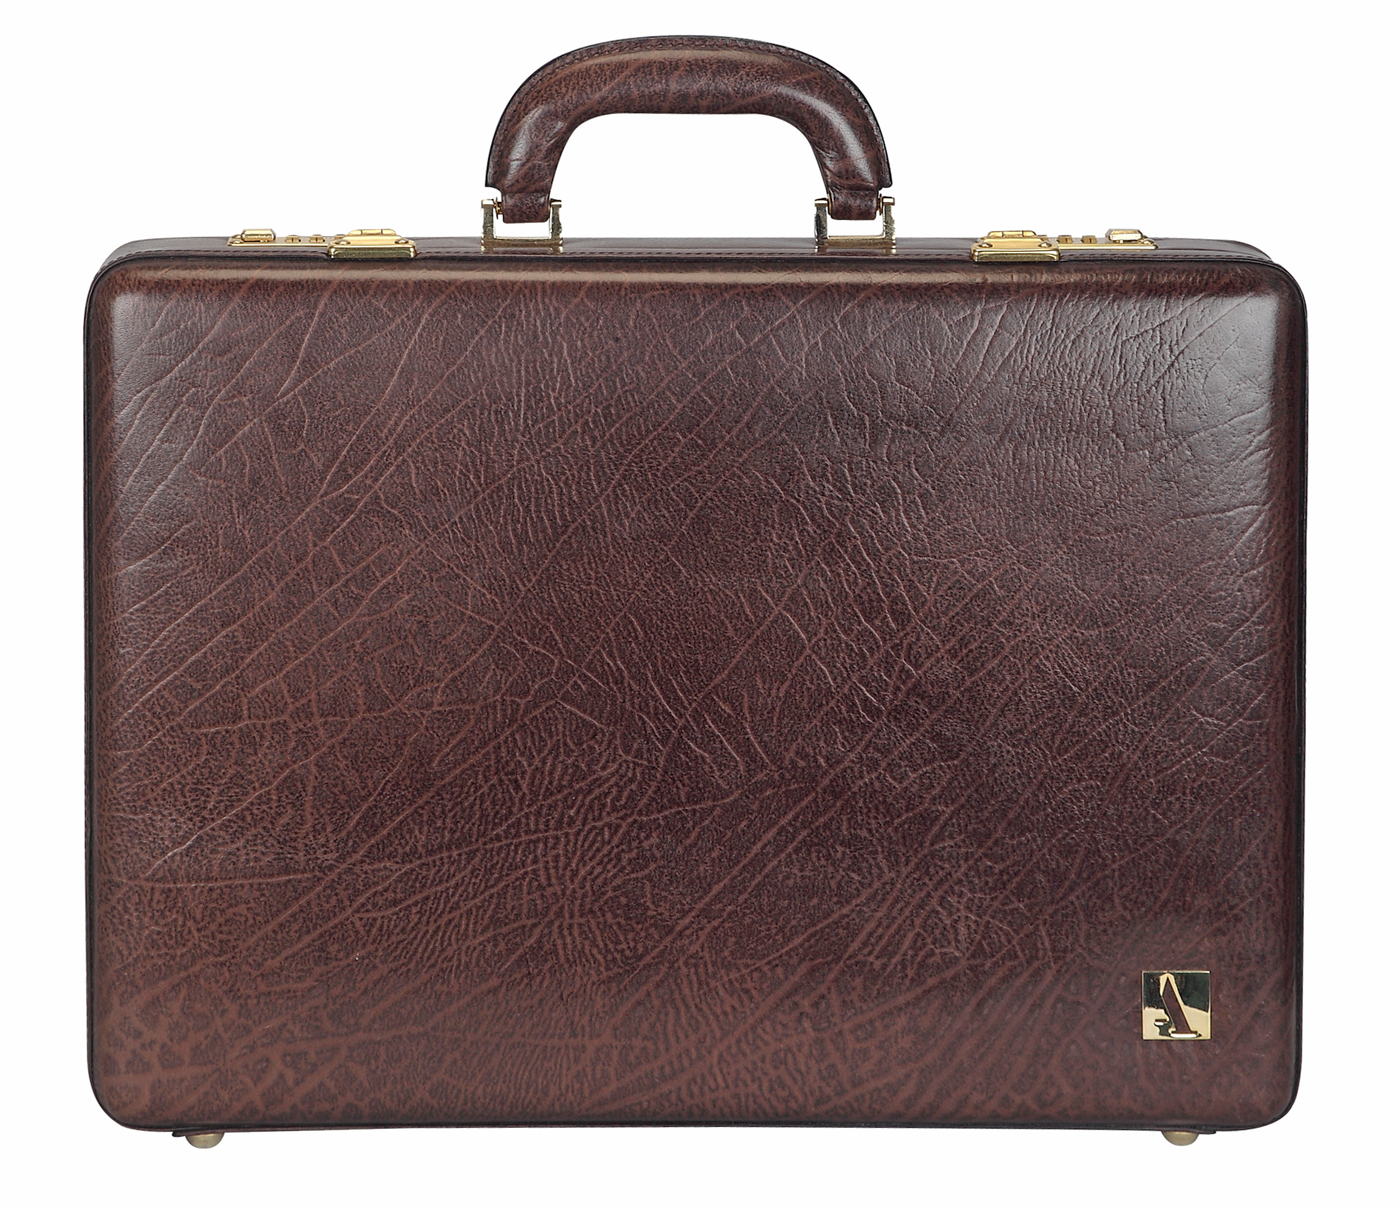 Briefcase / Attache's - BC14